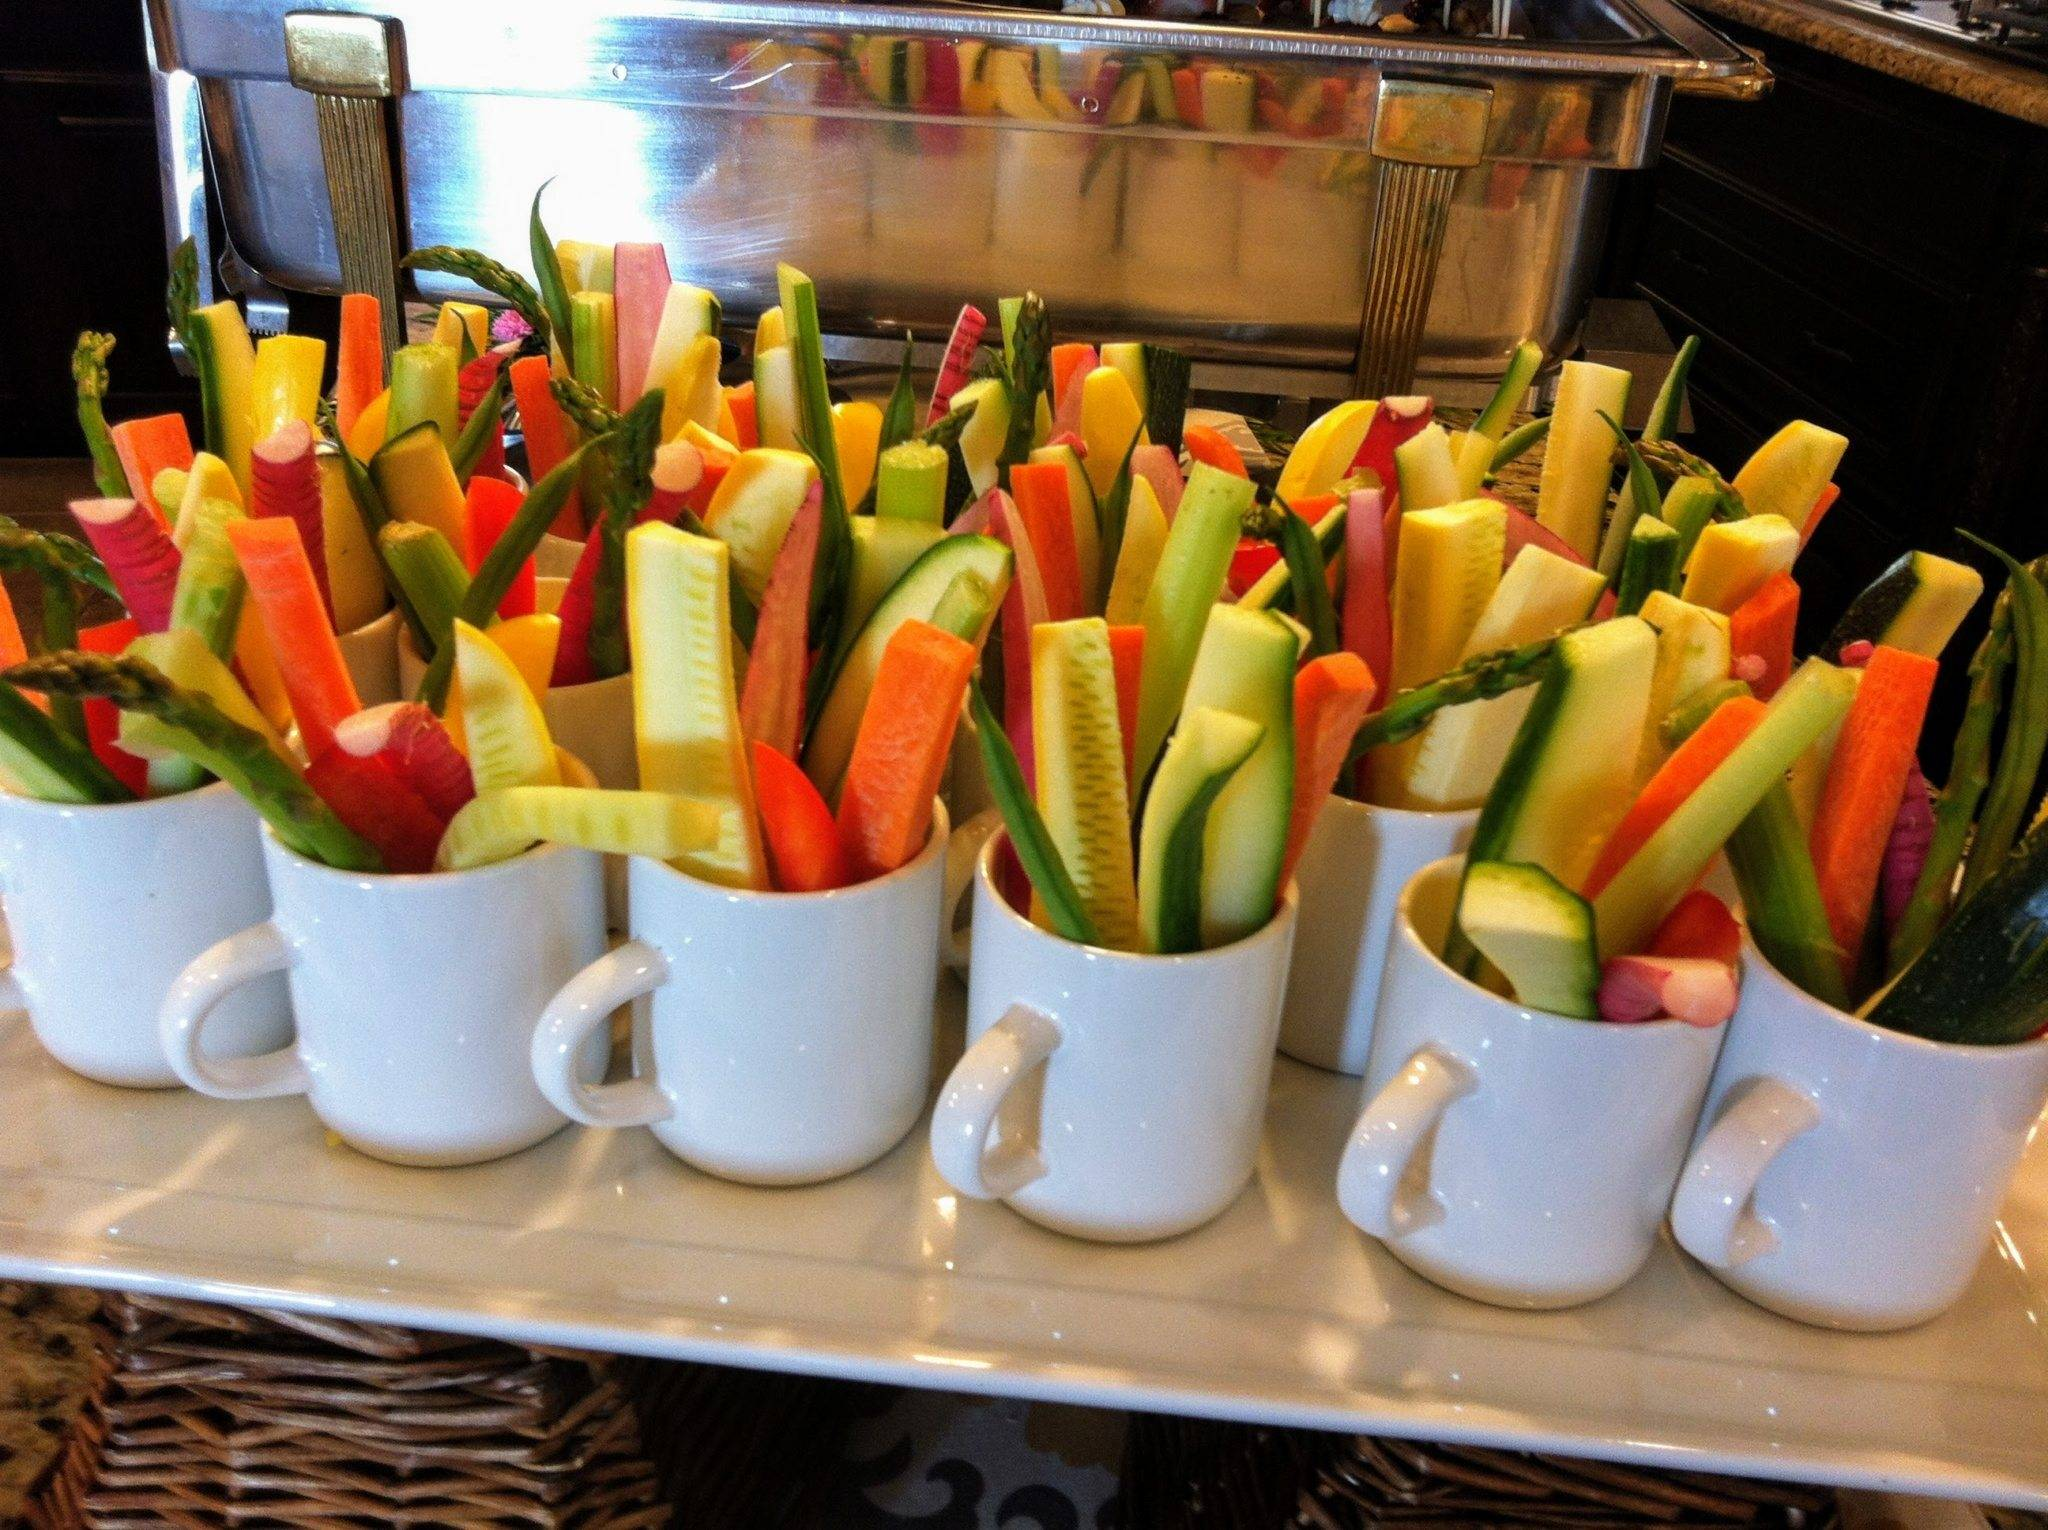 Mini Coffee Mugs filled with Assorted Vegetables